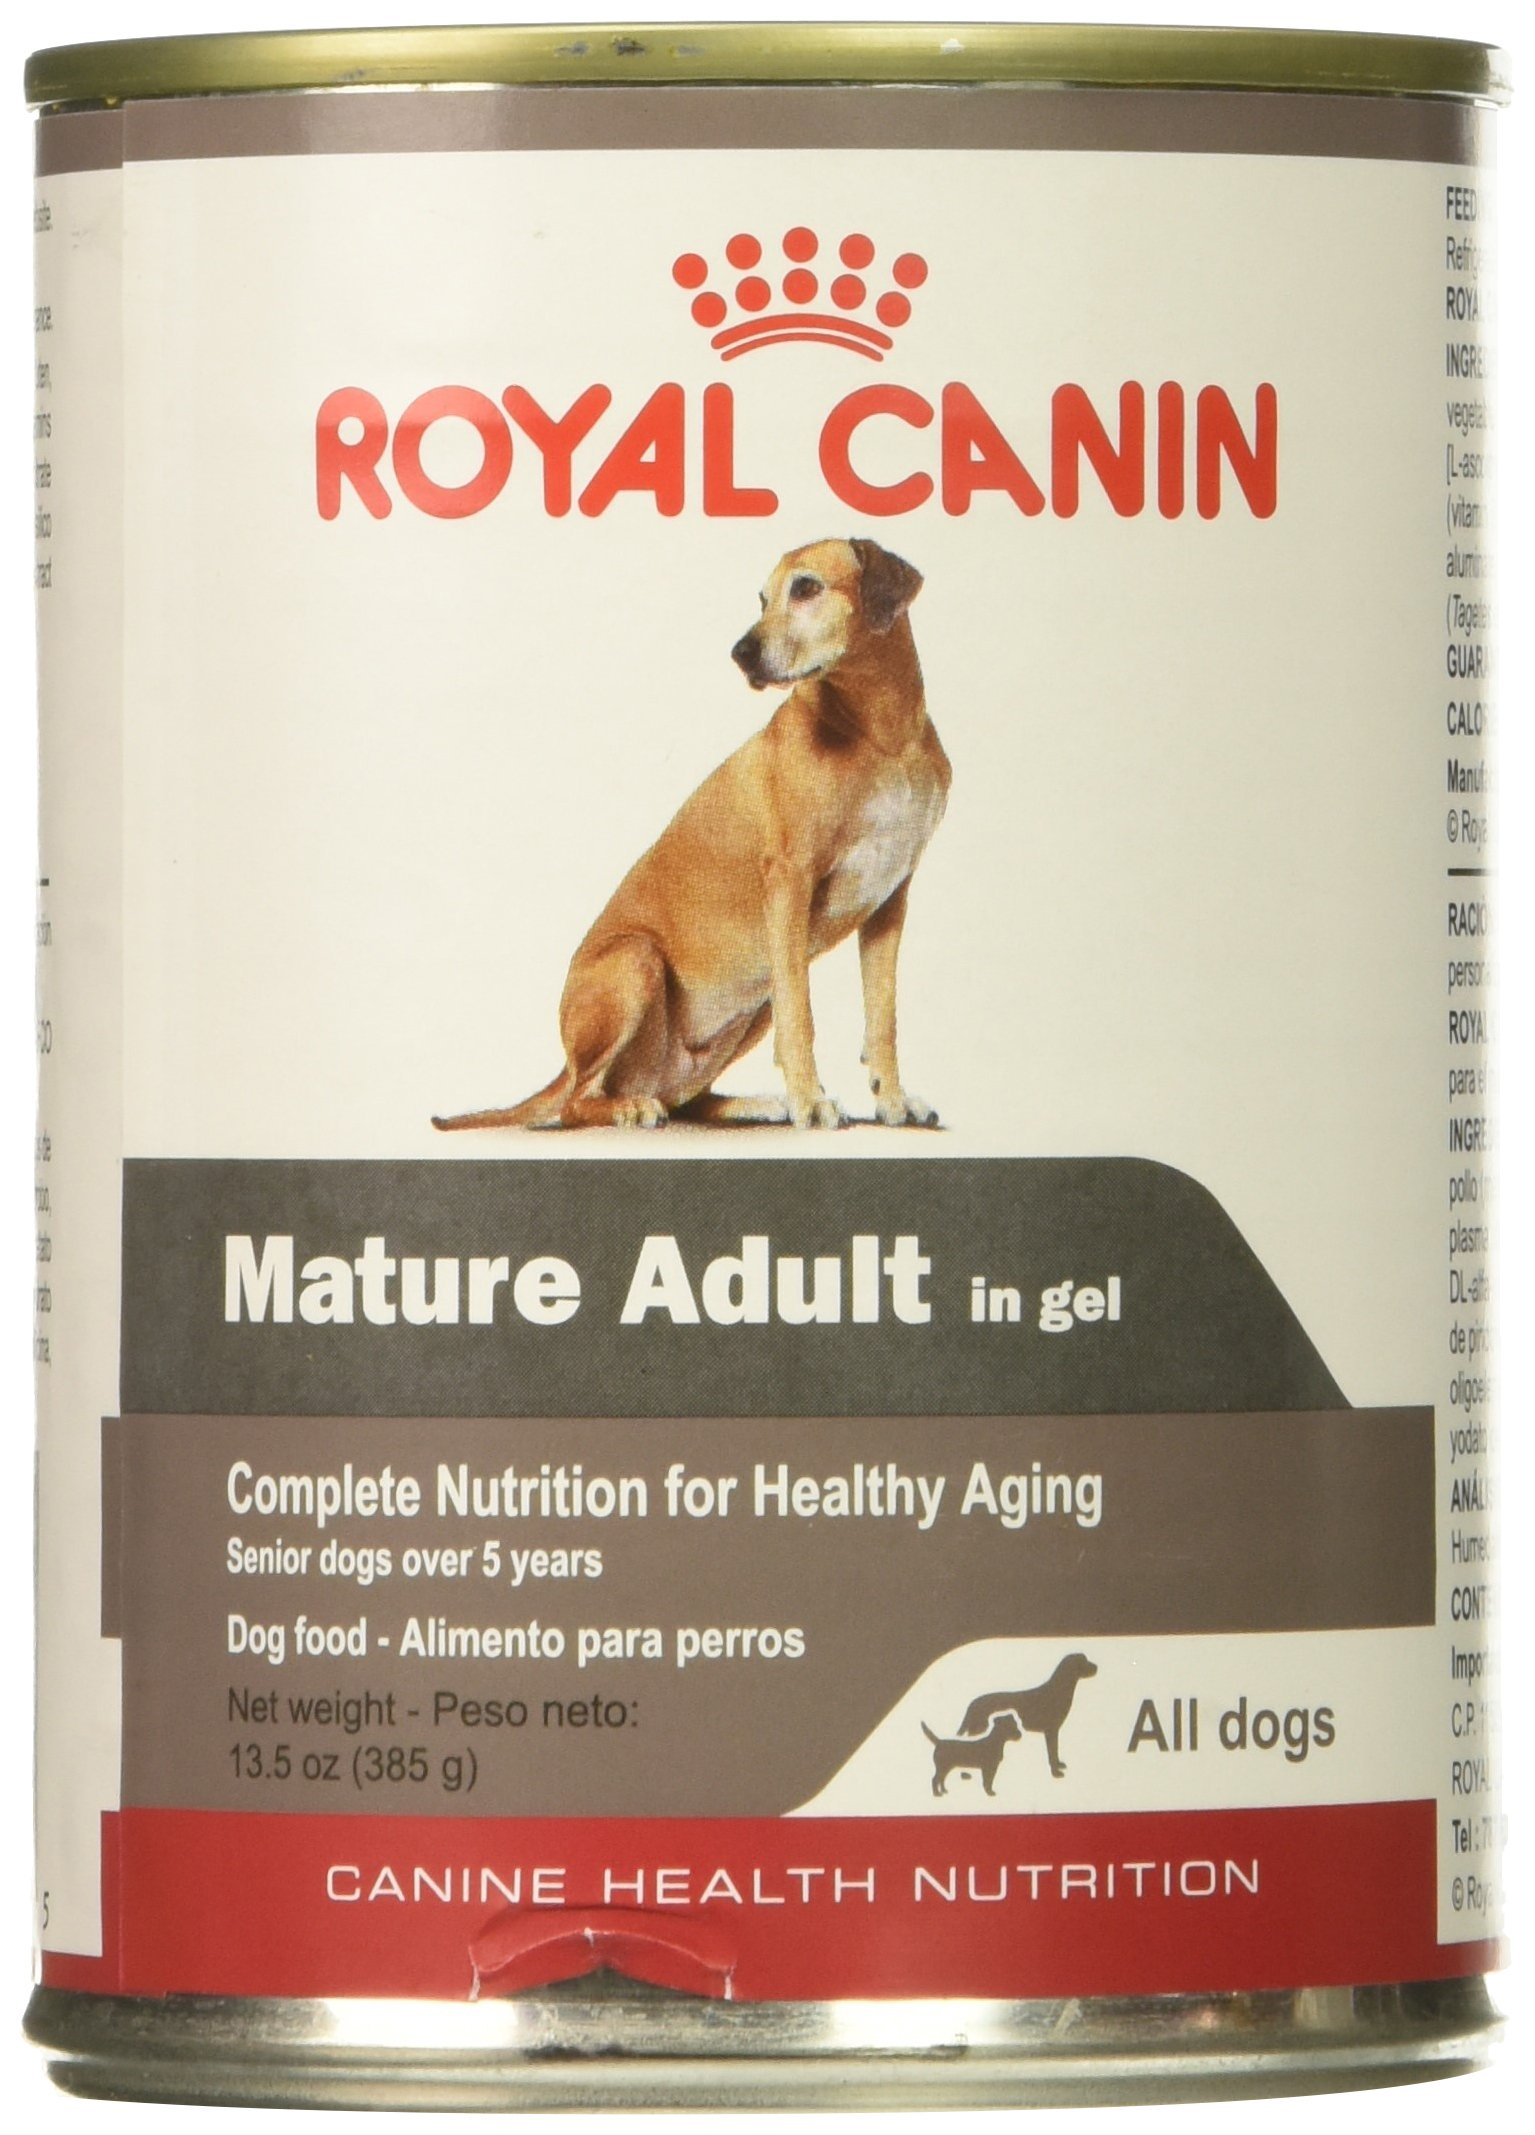 Royal Canin Canine Health Nutrition Mature Adult In Gel Canned Dog Food (Case of 12/1), 13.5 oz